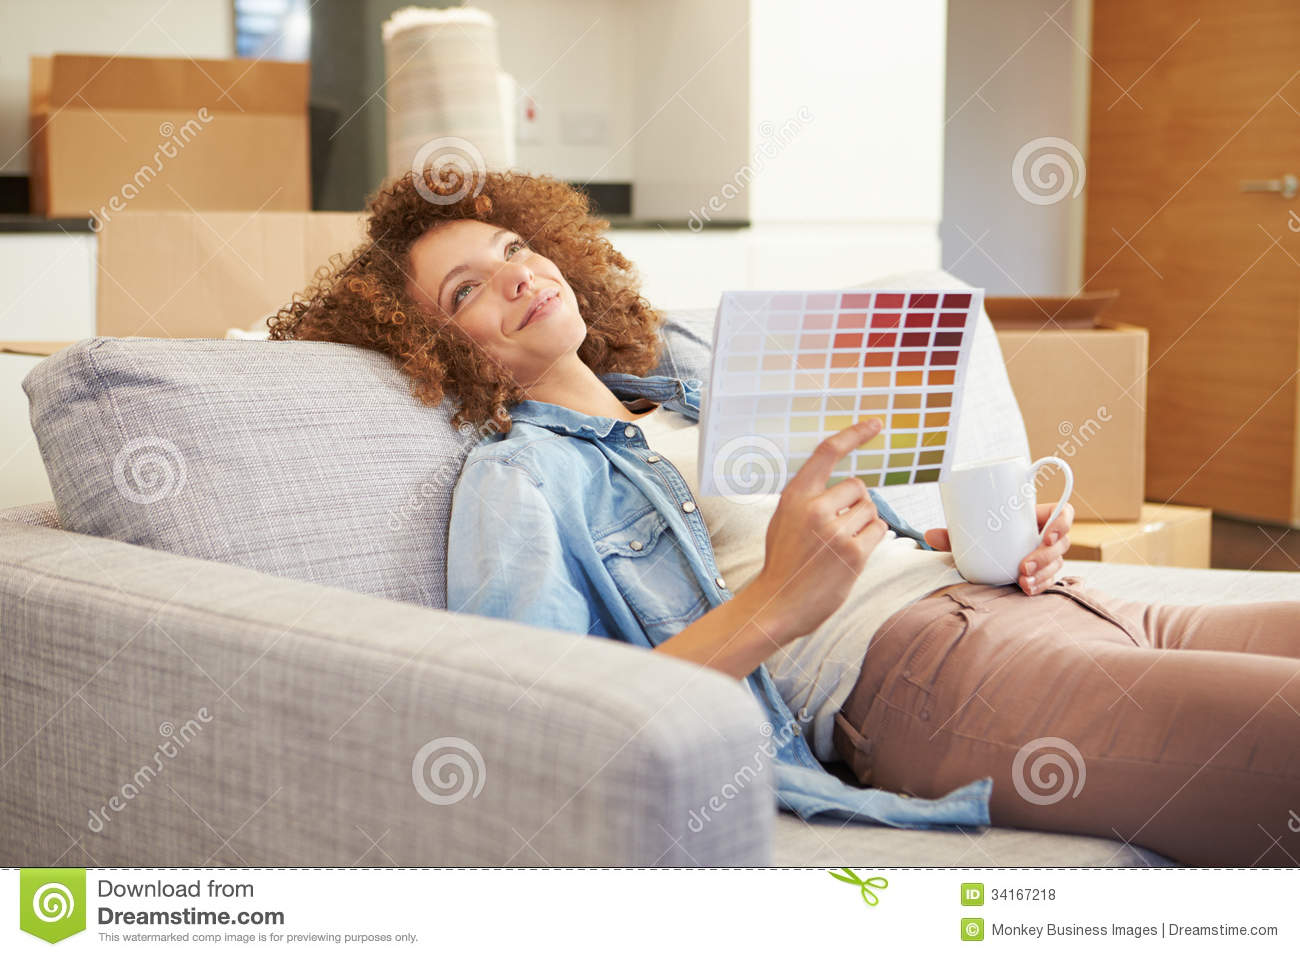 Hot Paint woman sitting on sofa looking at paint charts royalty free stock